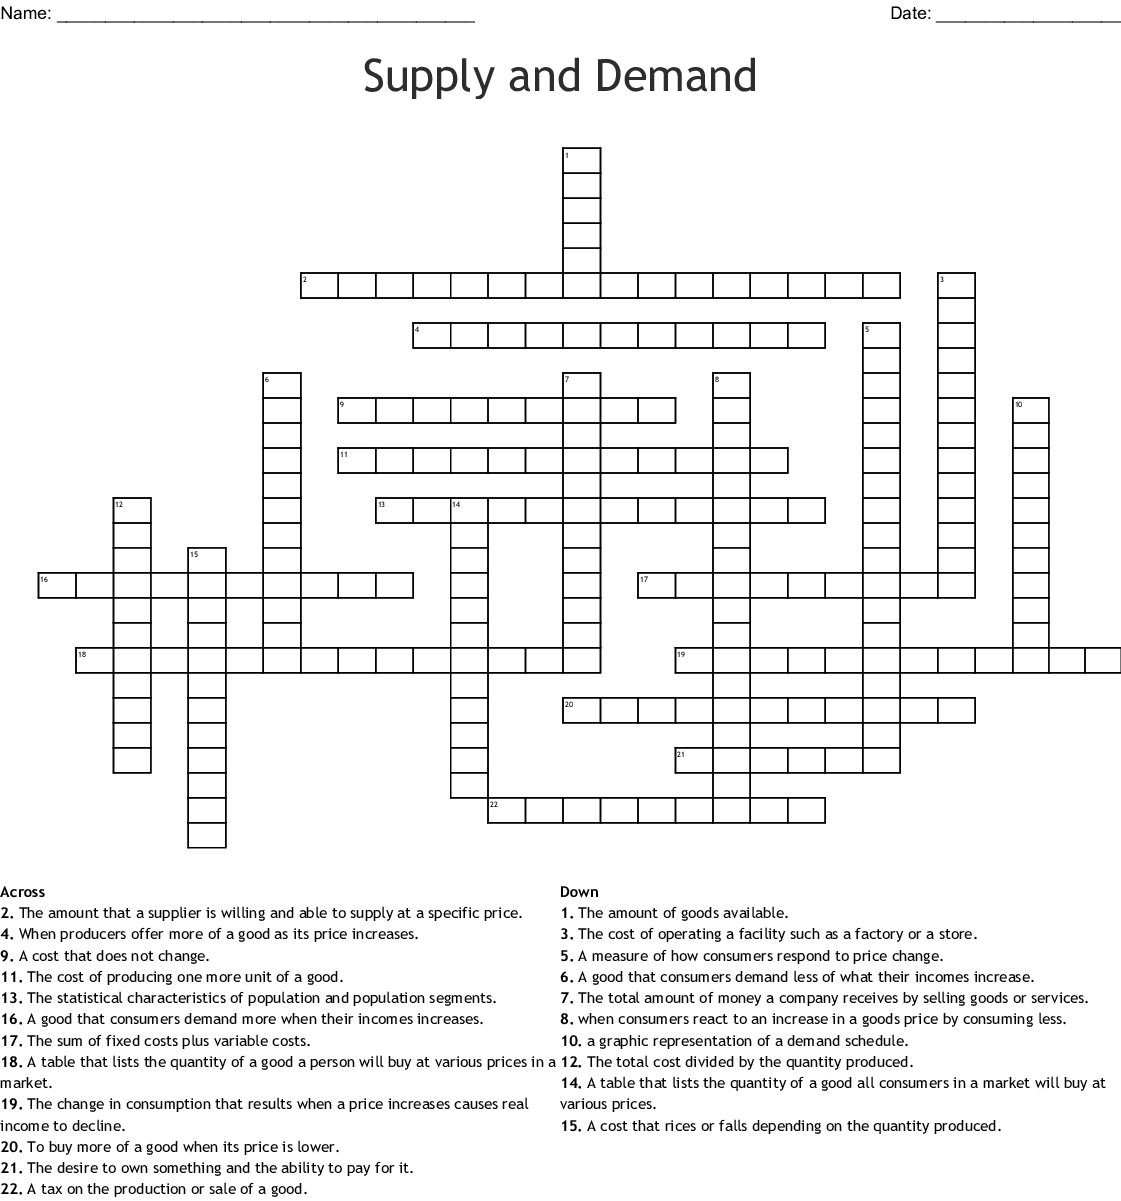 Supply And Demand Crossword